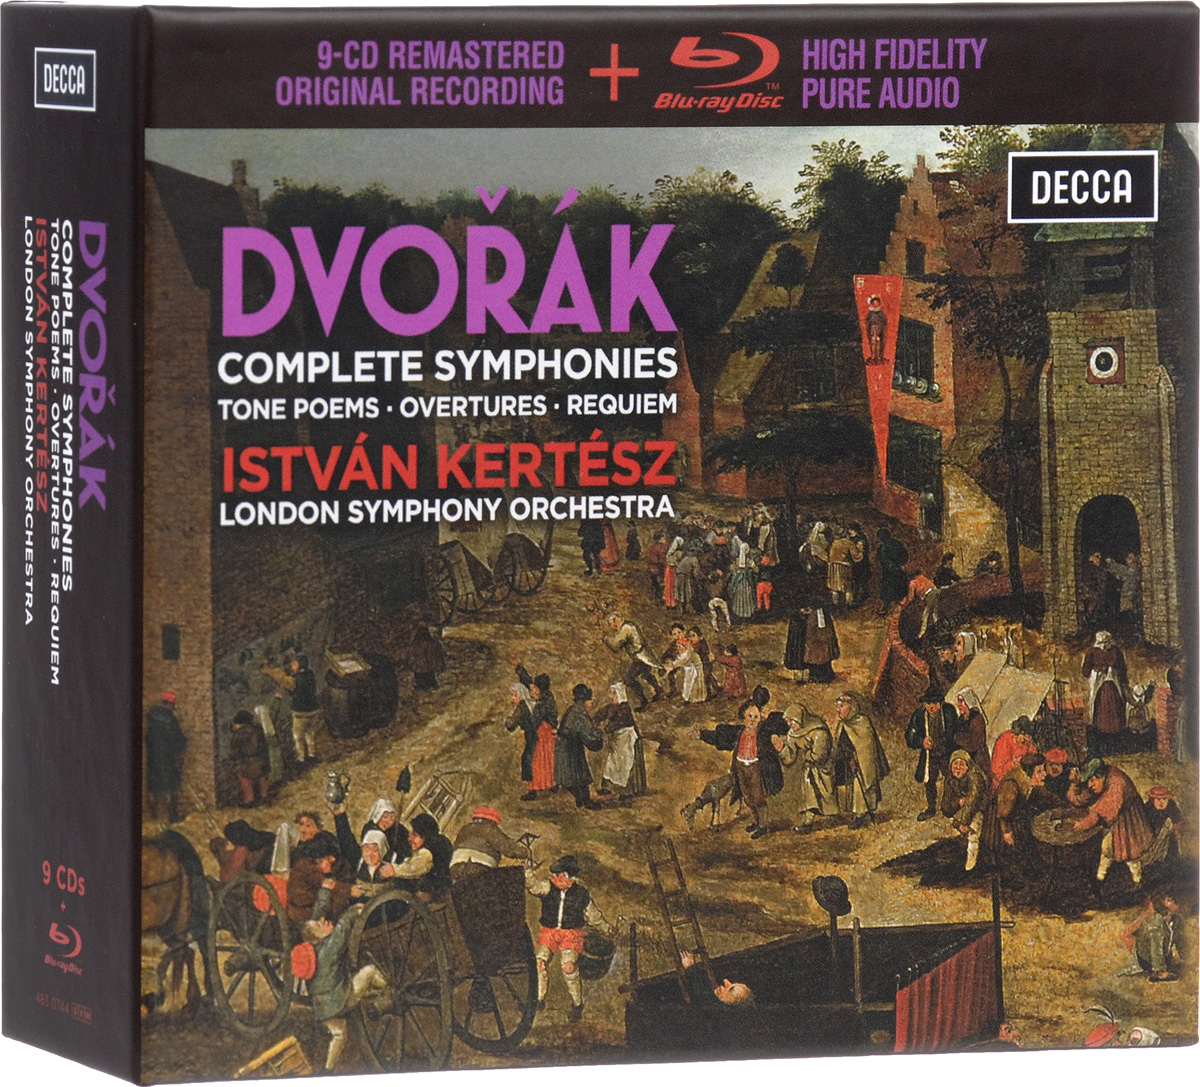 Иштван Кертес,The London Symphony Orchestra Istvan Kertesz: Dvorak: Complete Symphonies: Tone Poems / Overtures / Requiem (9 CD + Blu-ray) а дворжак месса ре мажор op 86 mass in d major op 86